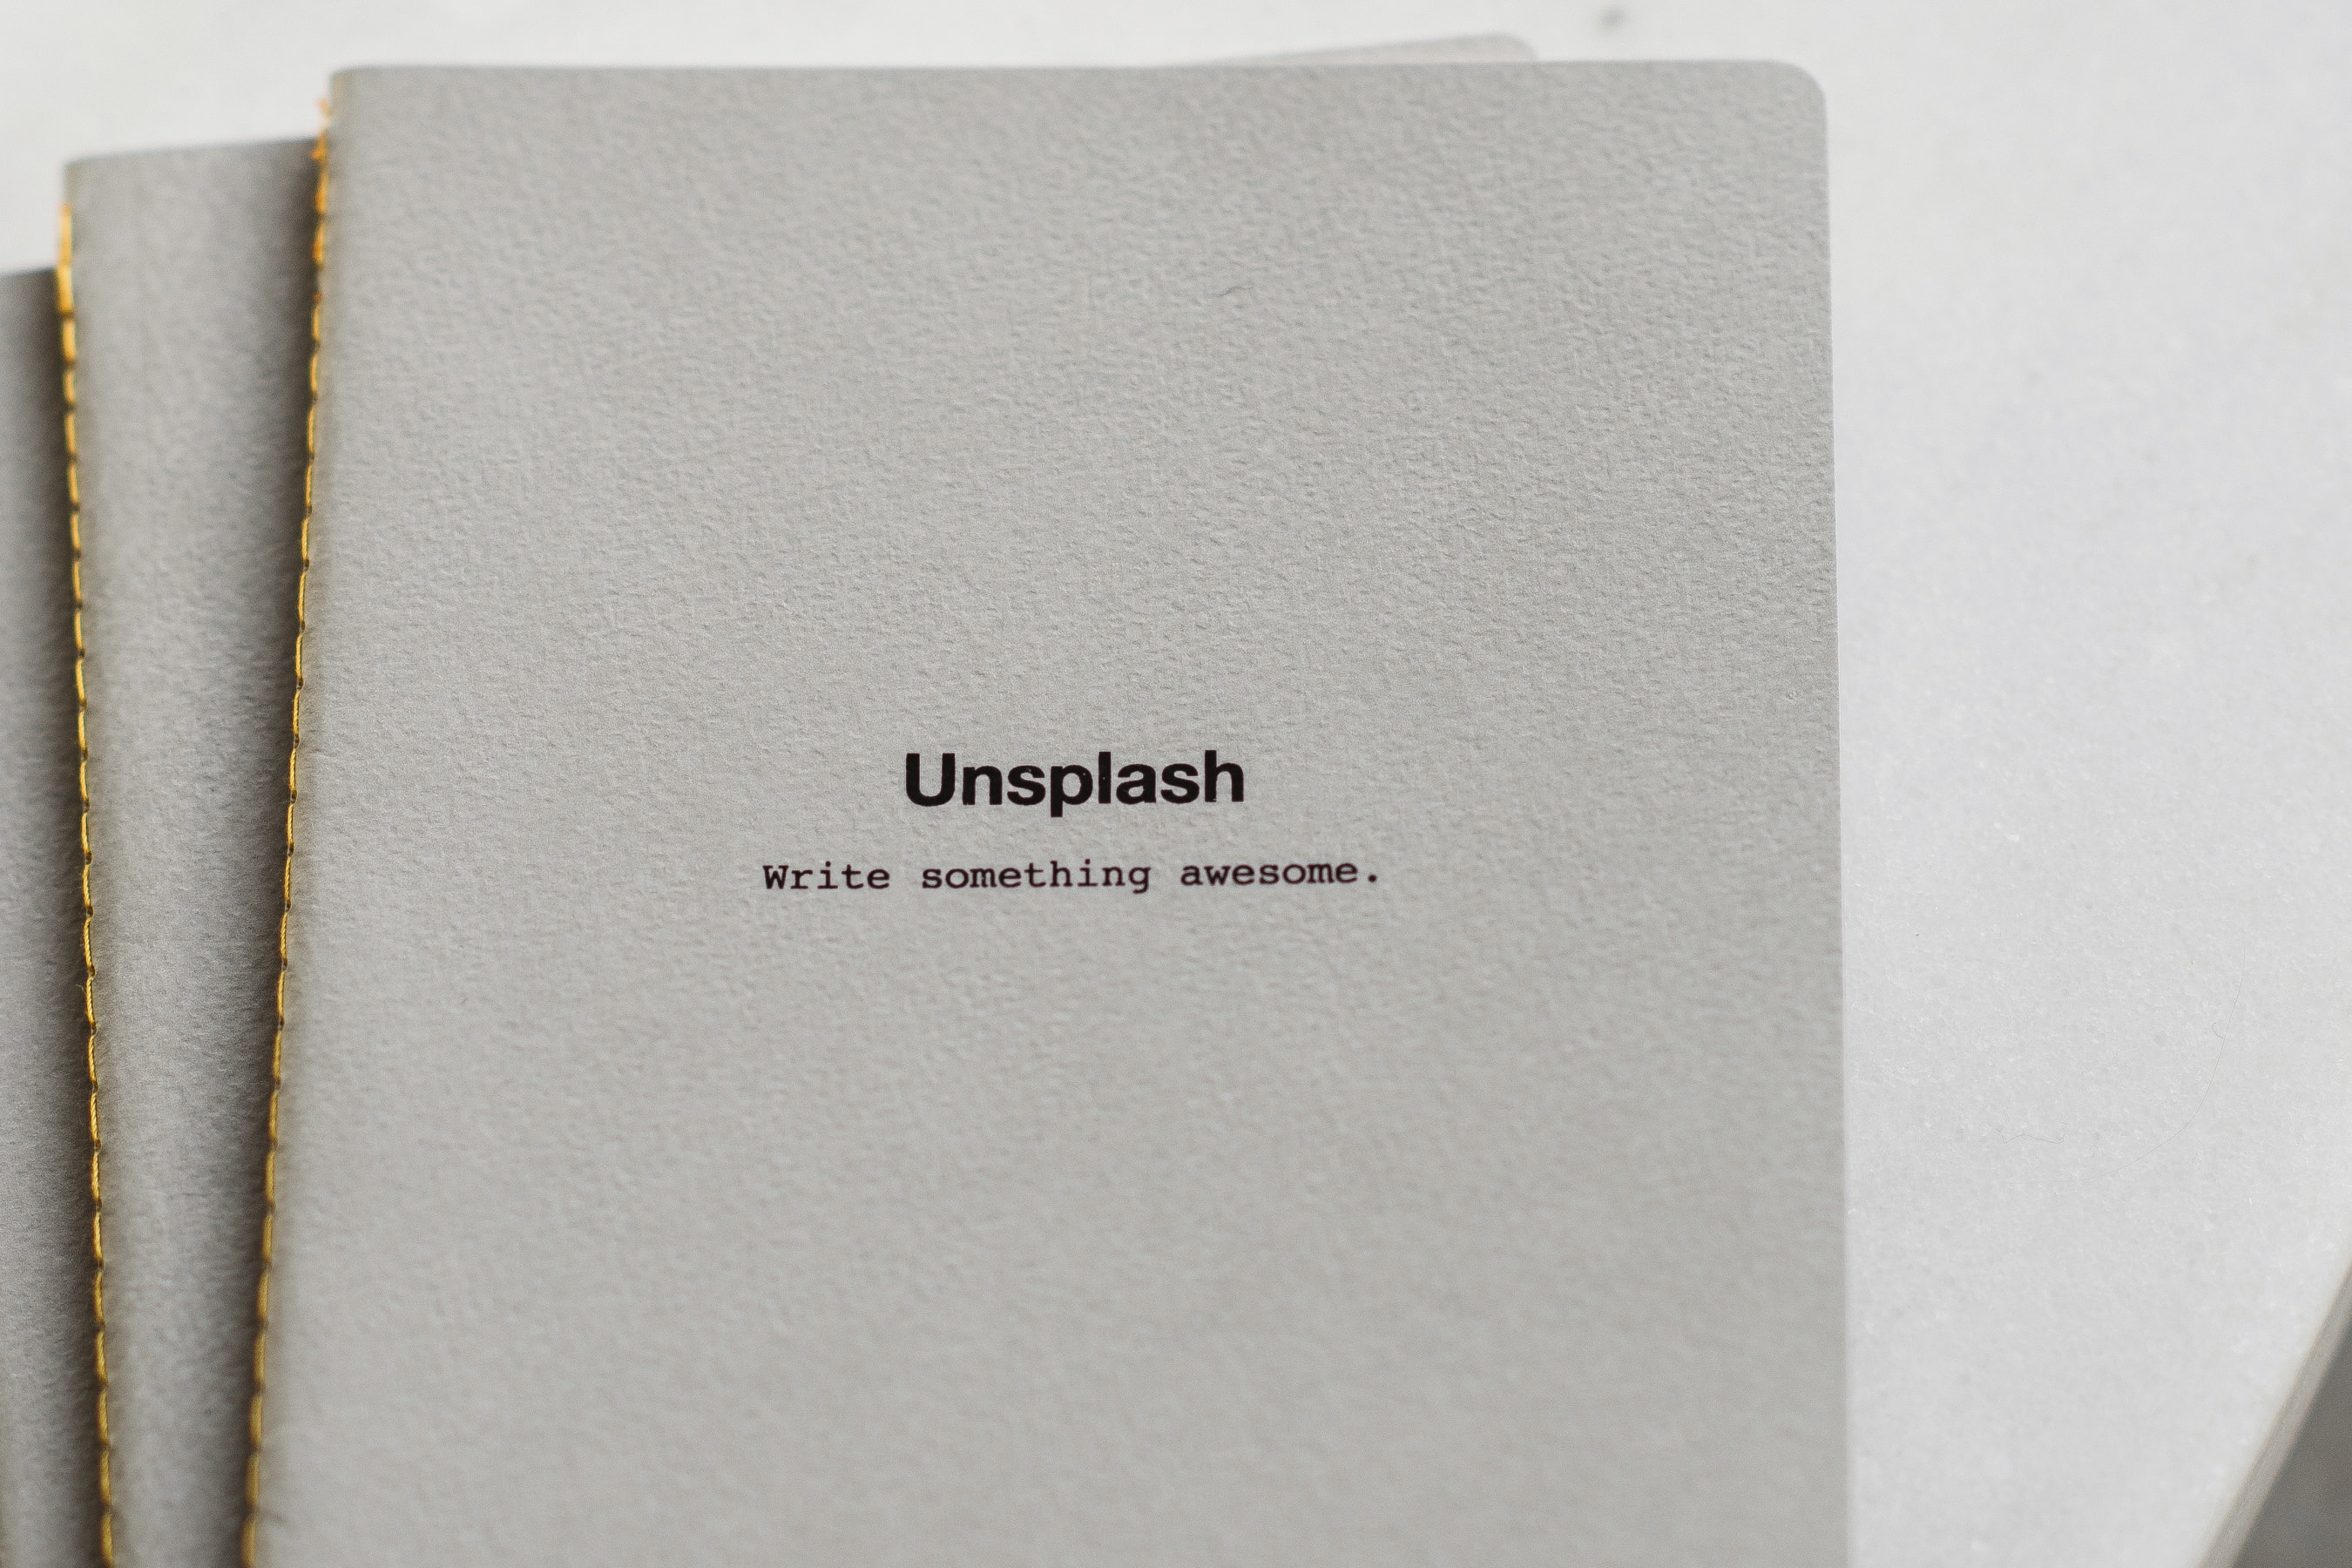 """Unsplash notebooks that read """"Write something awesome."""" with gold colored bindings on a white table."""